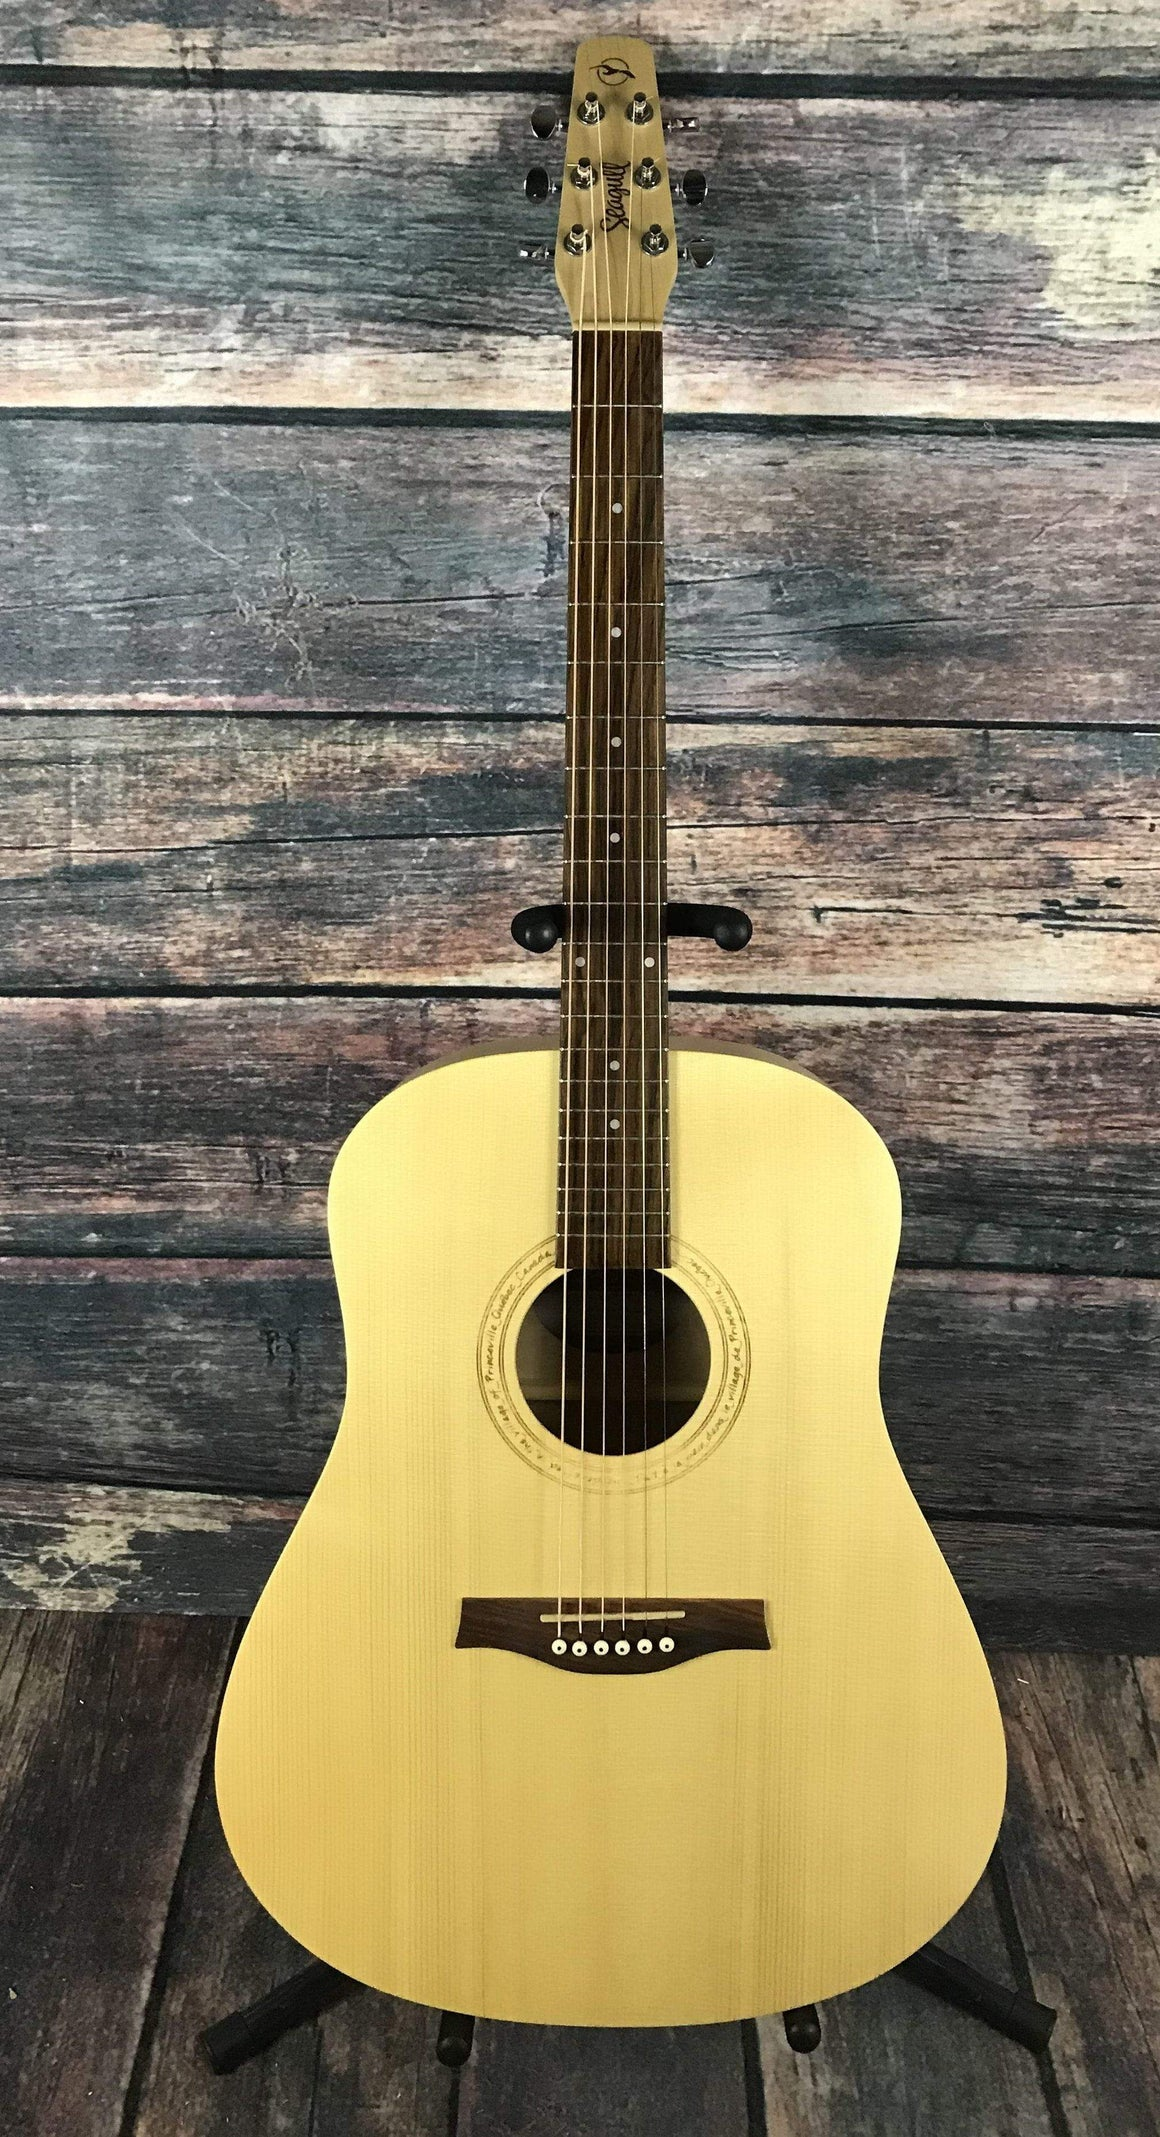 Seagull Acoustic Guitar Used Seagull Excursion Natural Solid Spruce Acoustic Guitar with Gig Bag